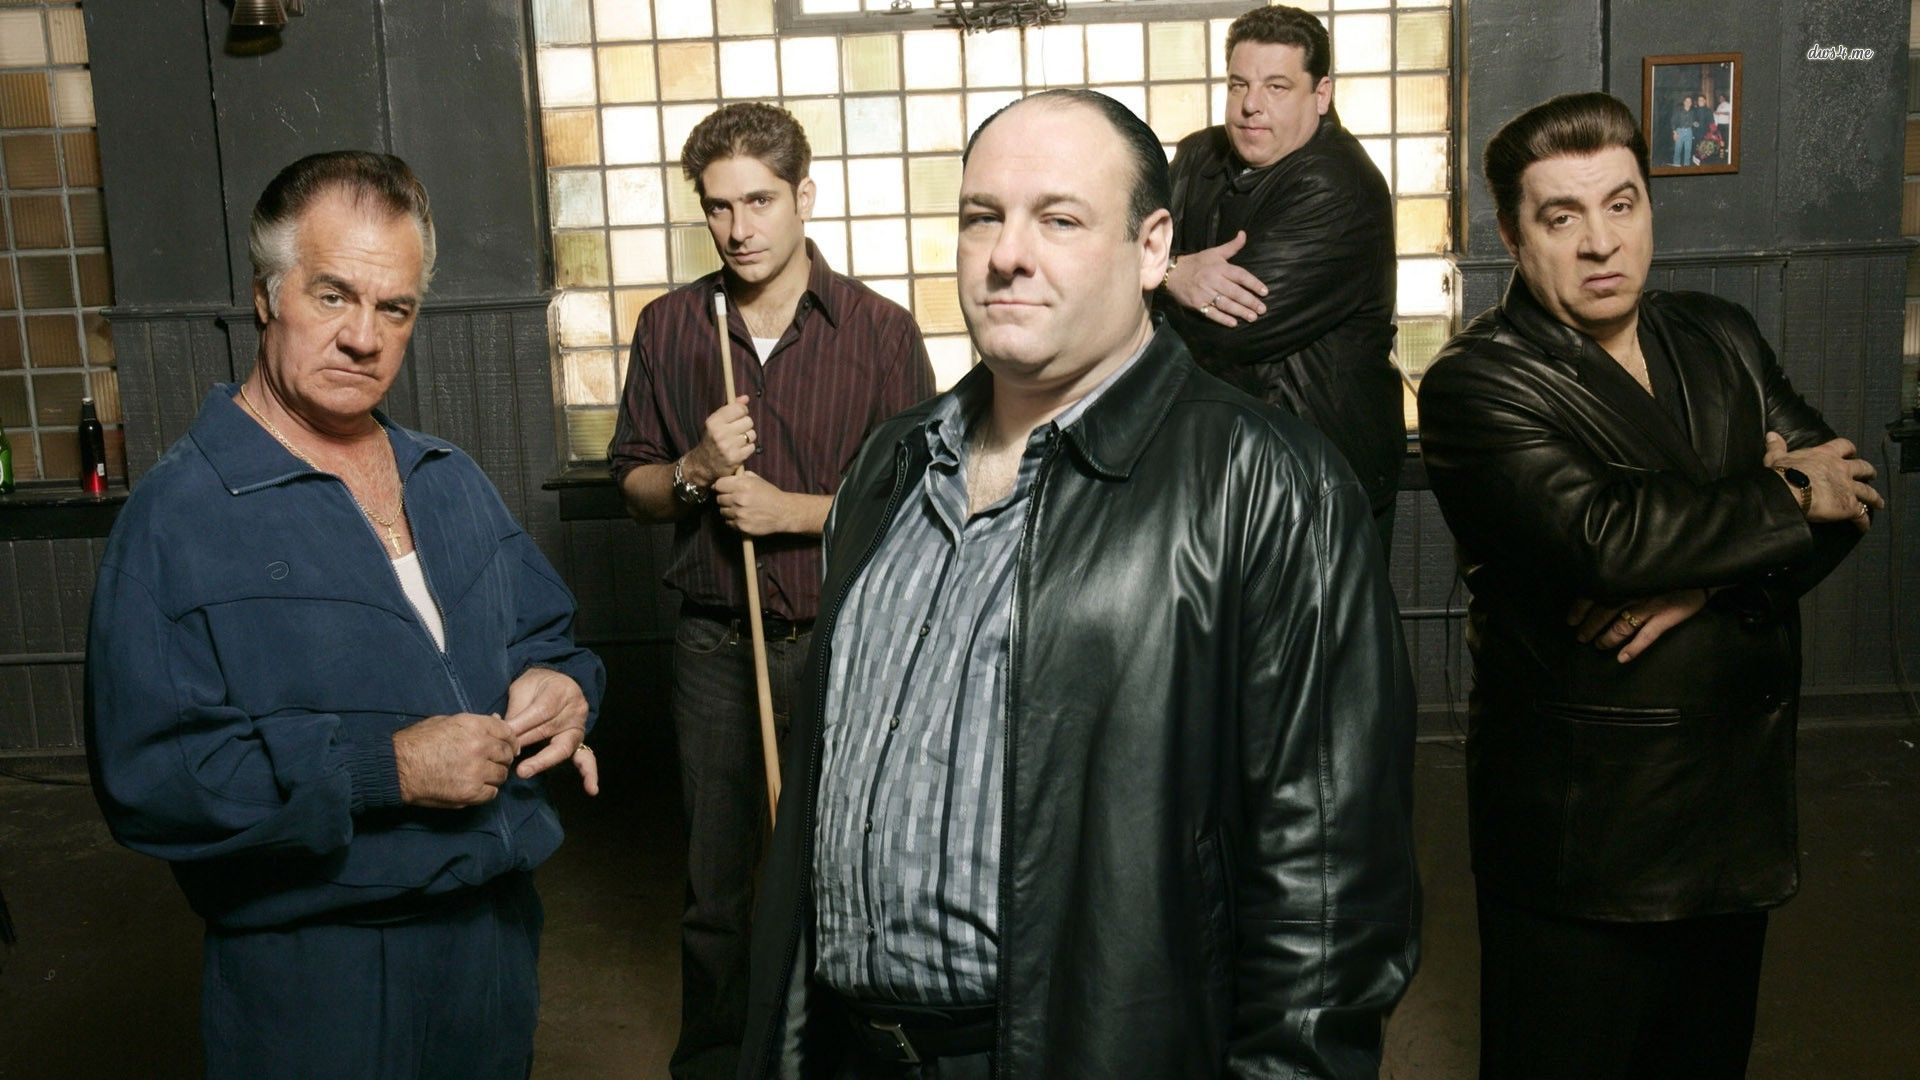 The sopranos the sopranos pinterest - Sopranos wallpaper ...